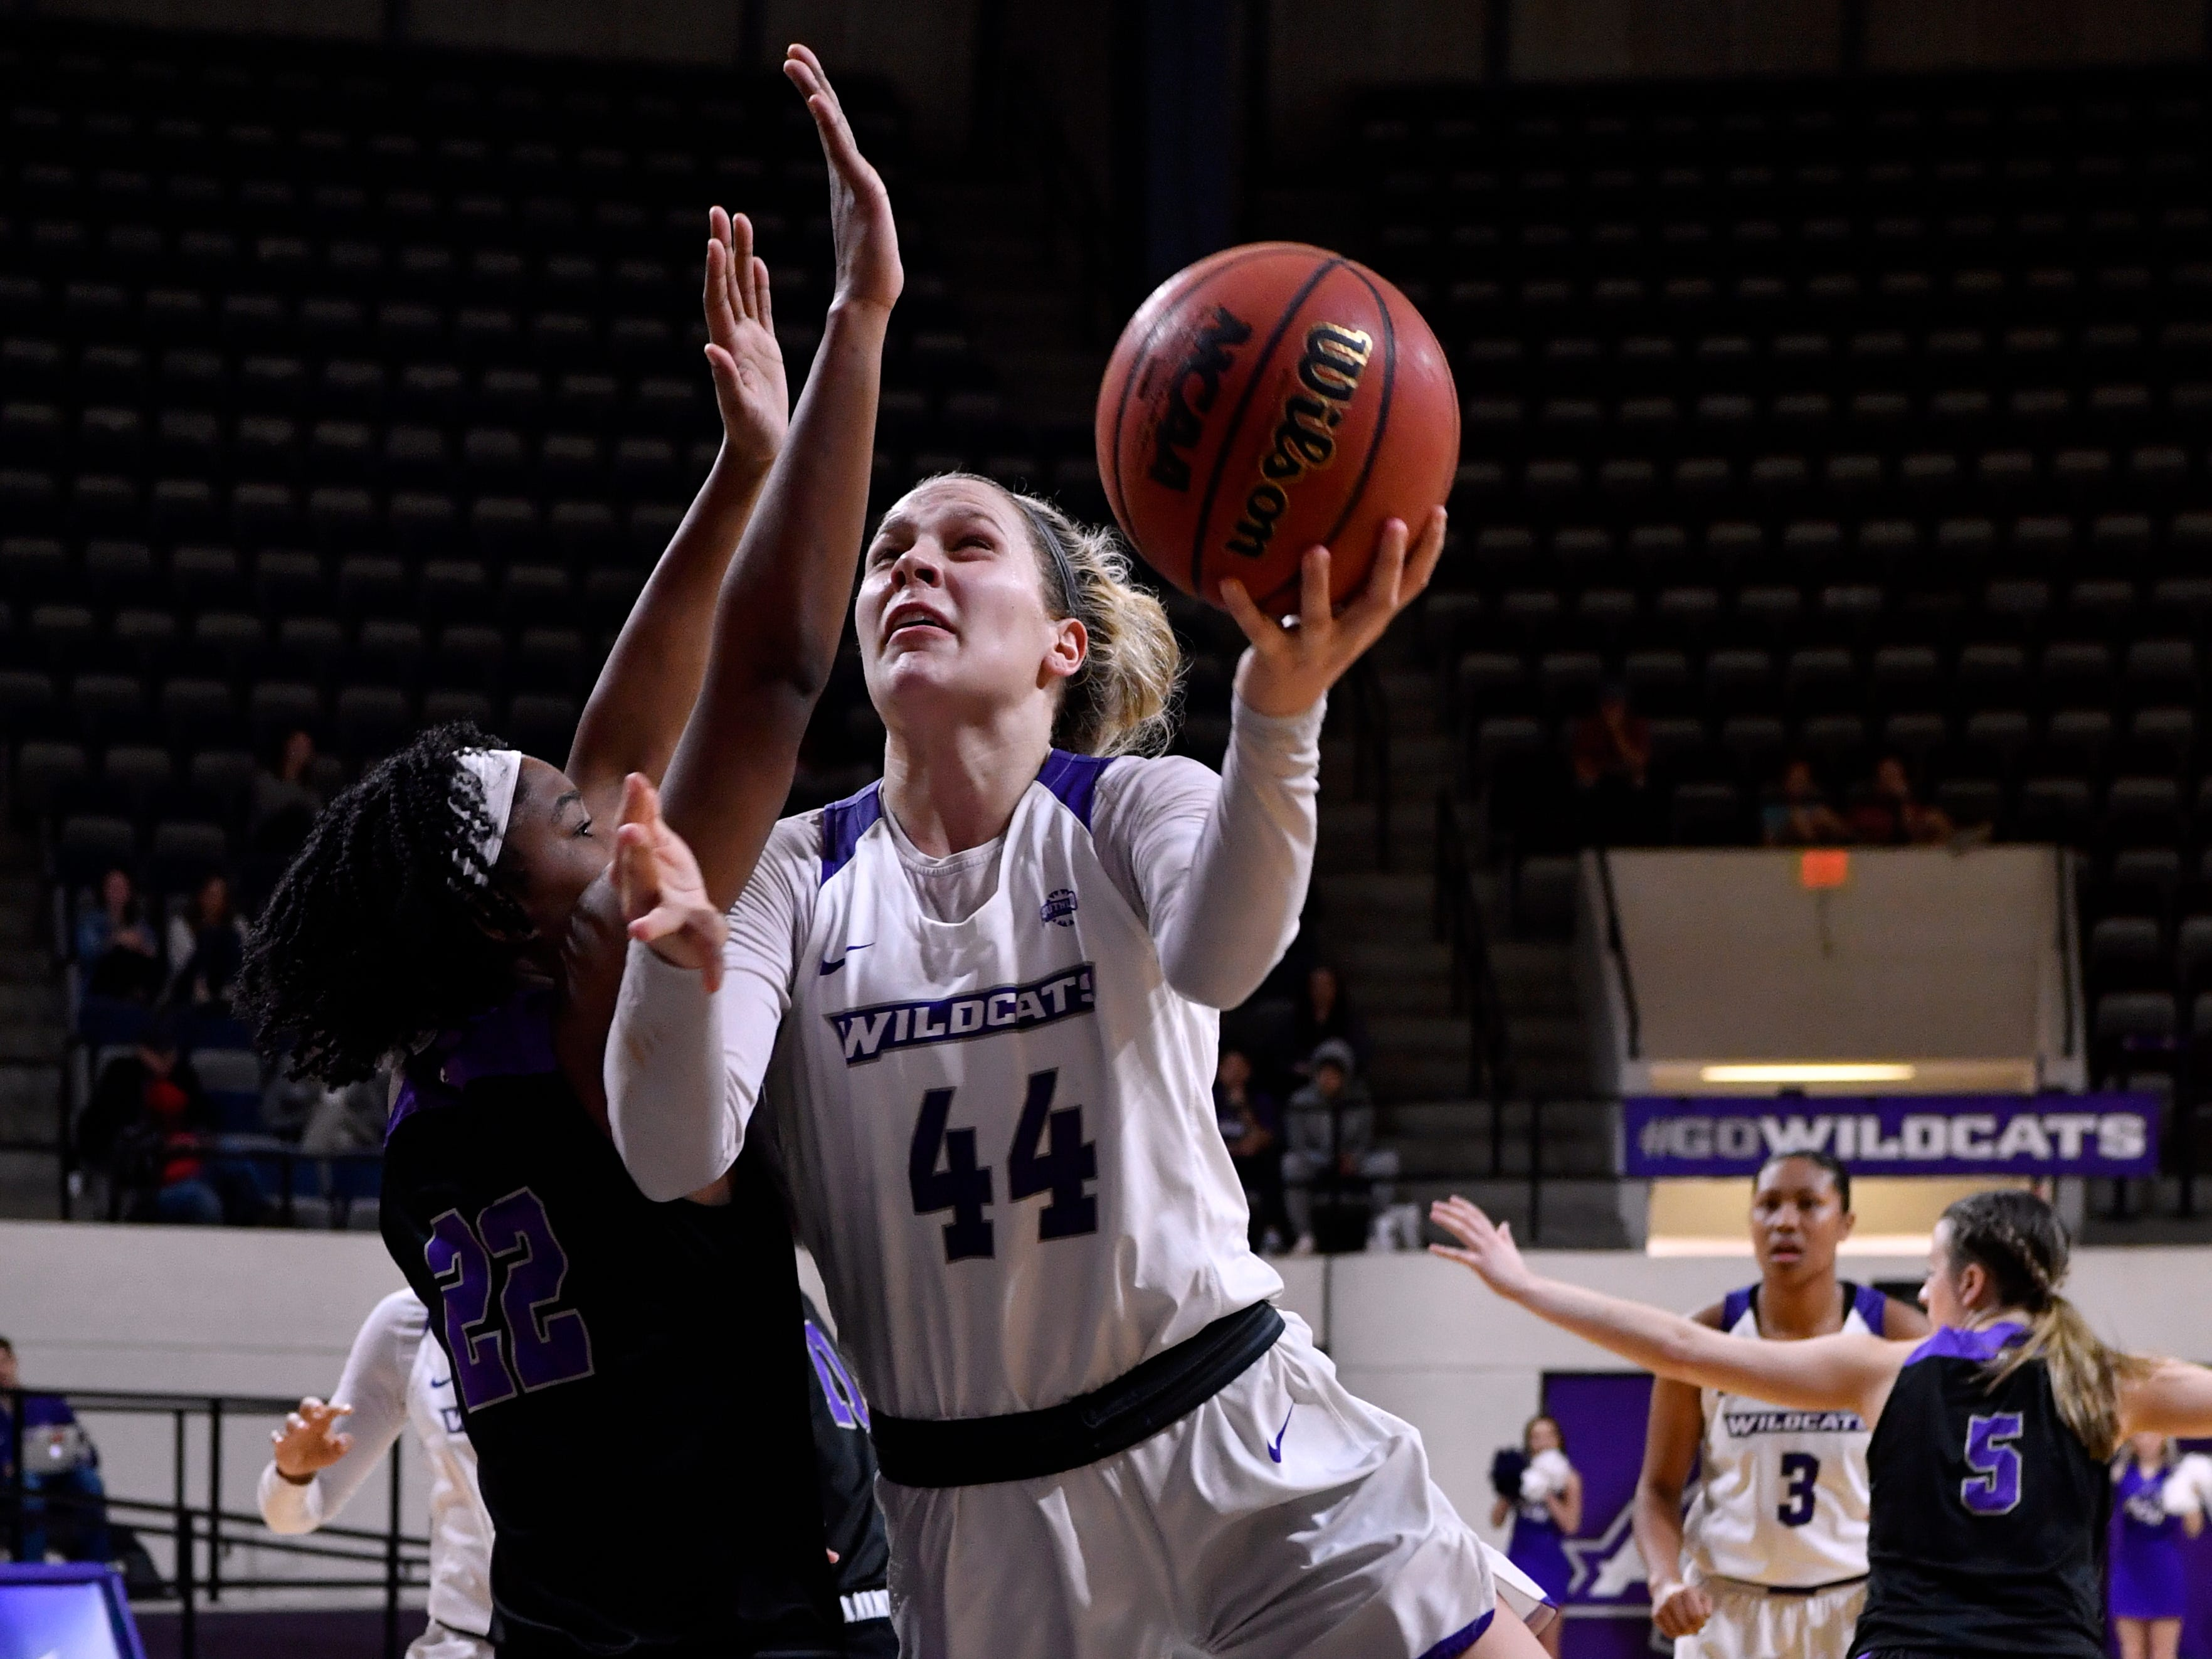 Lexie Ducat tries shooting around Central Arkansas' Alana Canady as she goes to the basket during Abilene Christian University's women's basketball game against Central Arkansas Saturday Jan. 26, 2019. Final score was 77-70, ACU.